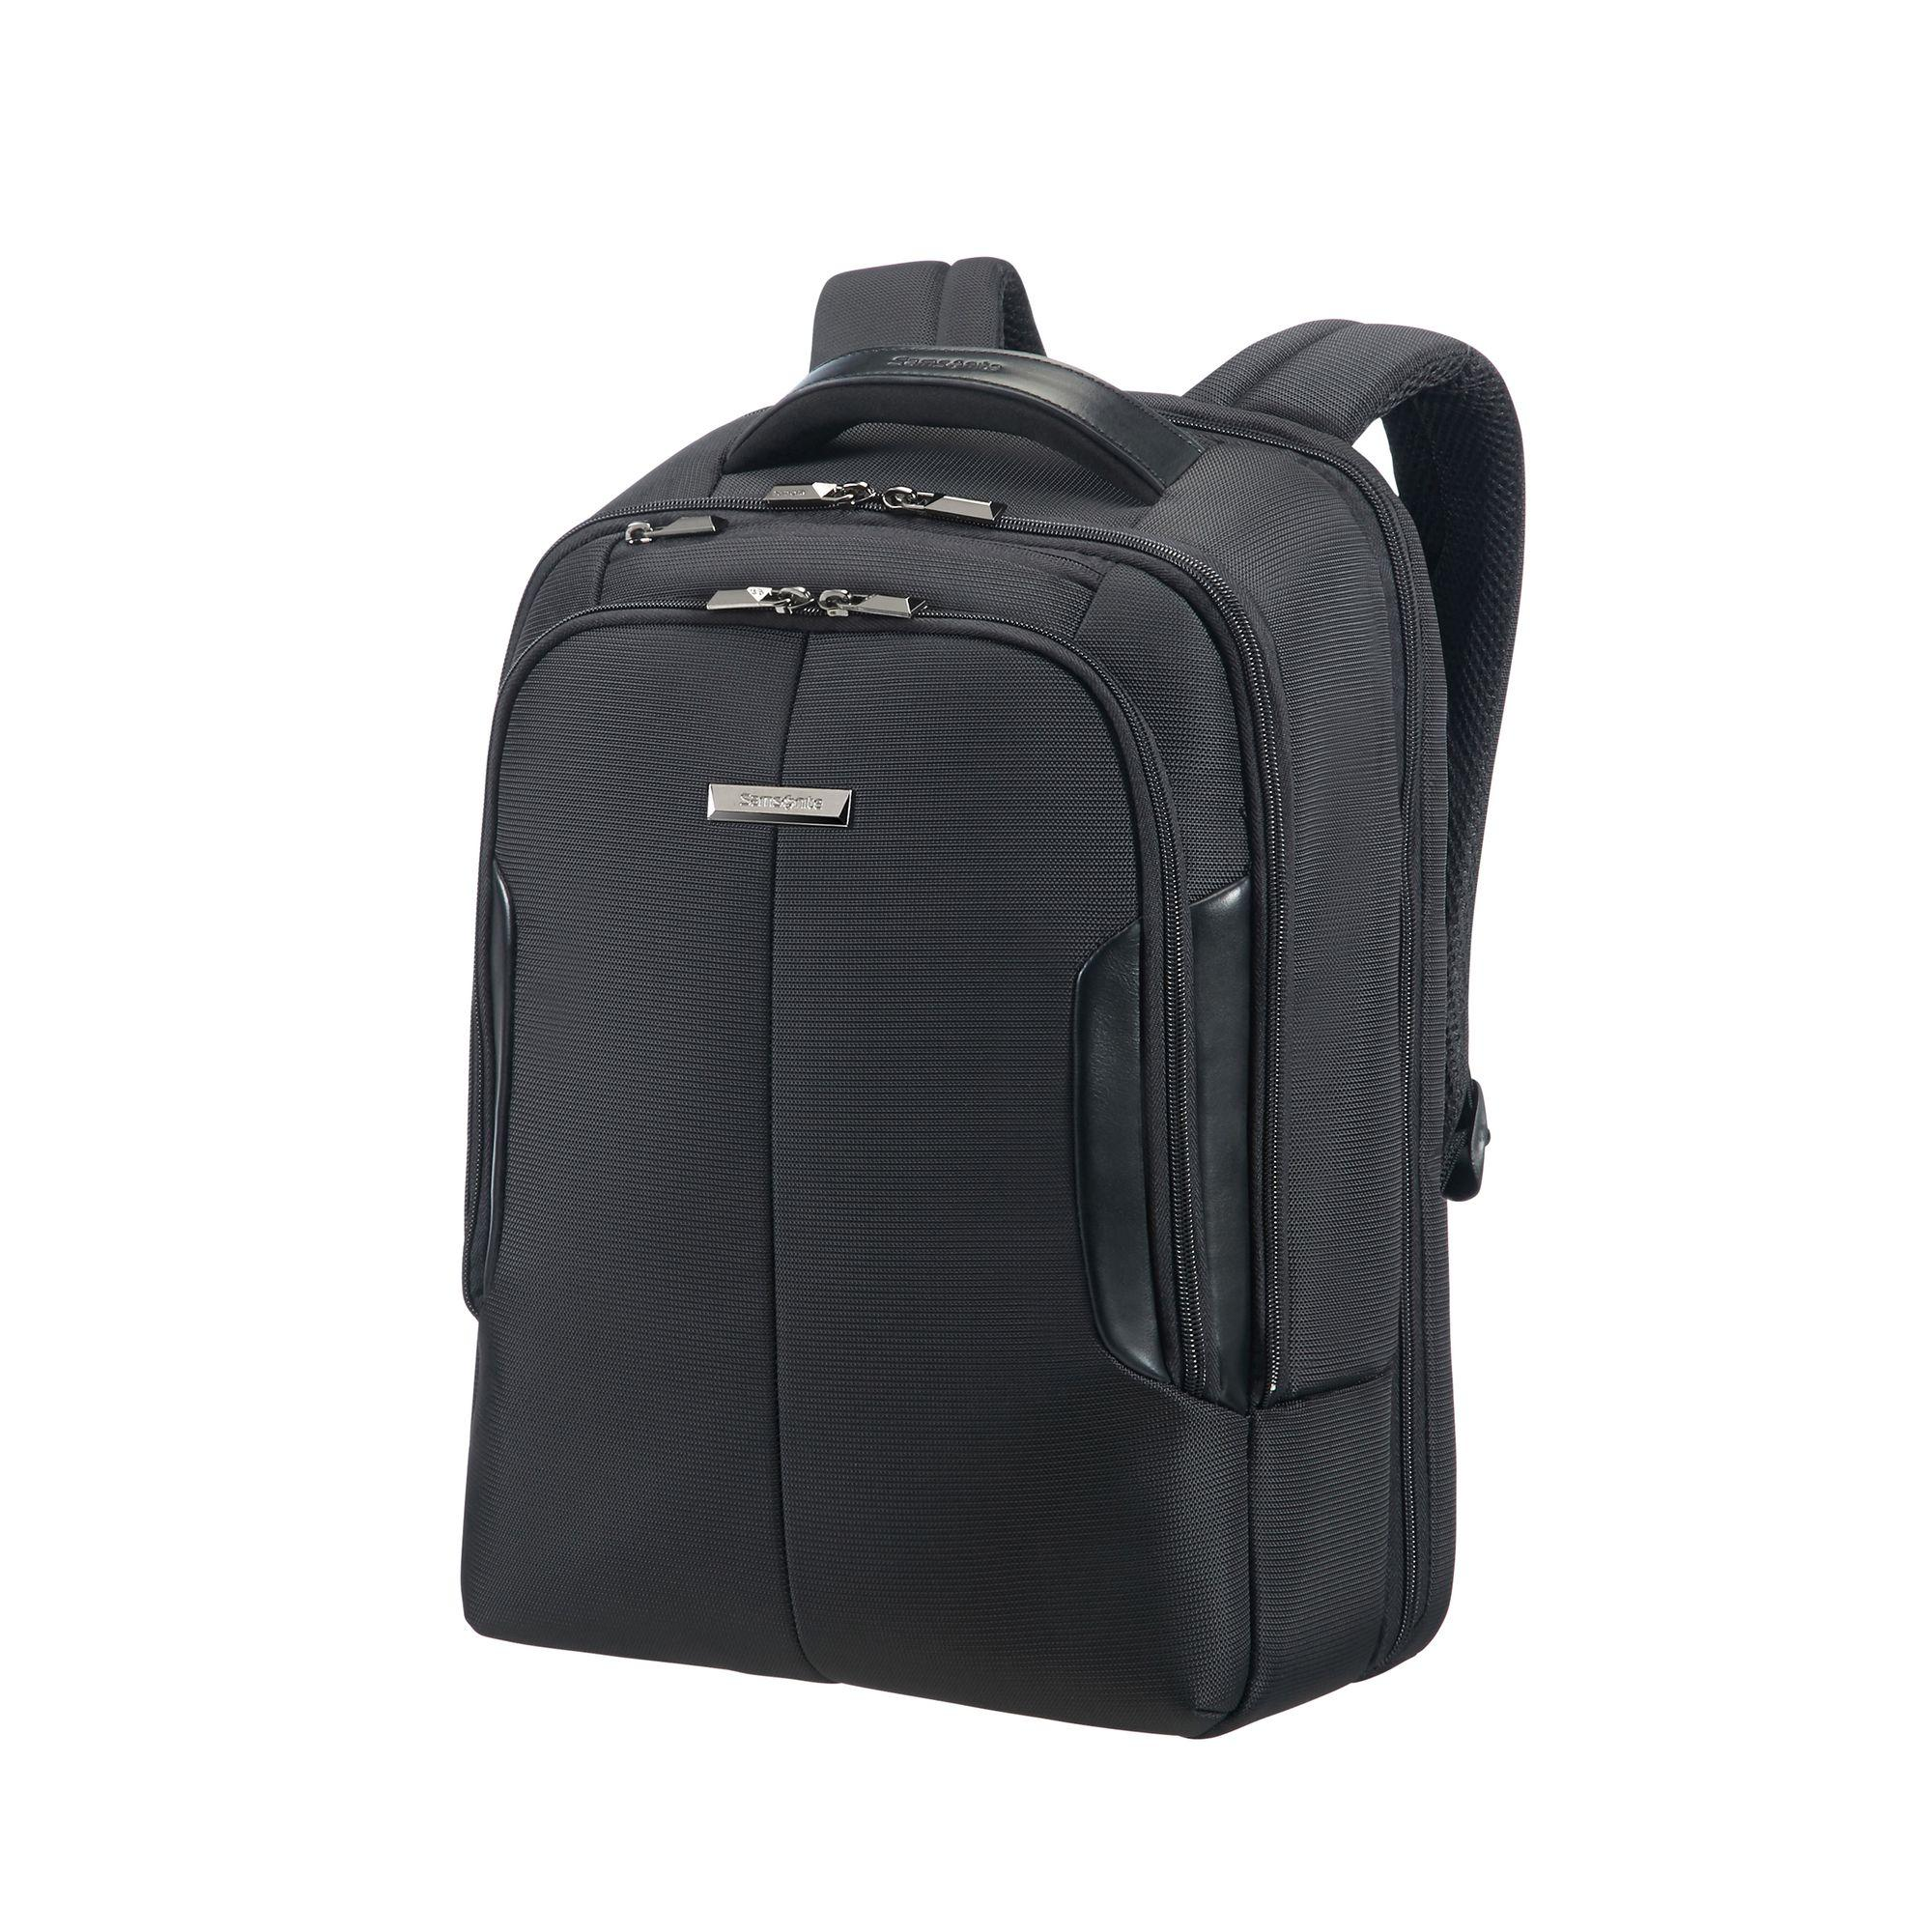 Samsonite XBR pc ryggsekk 14,1 tommer, Svart Samsonite